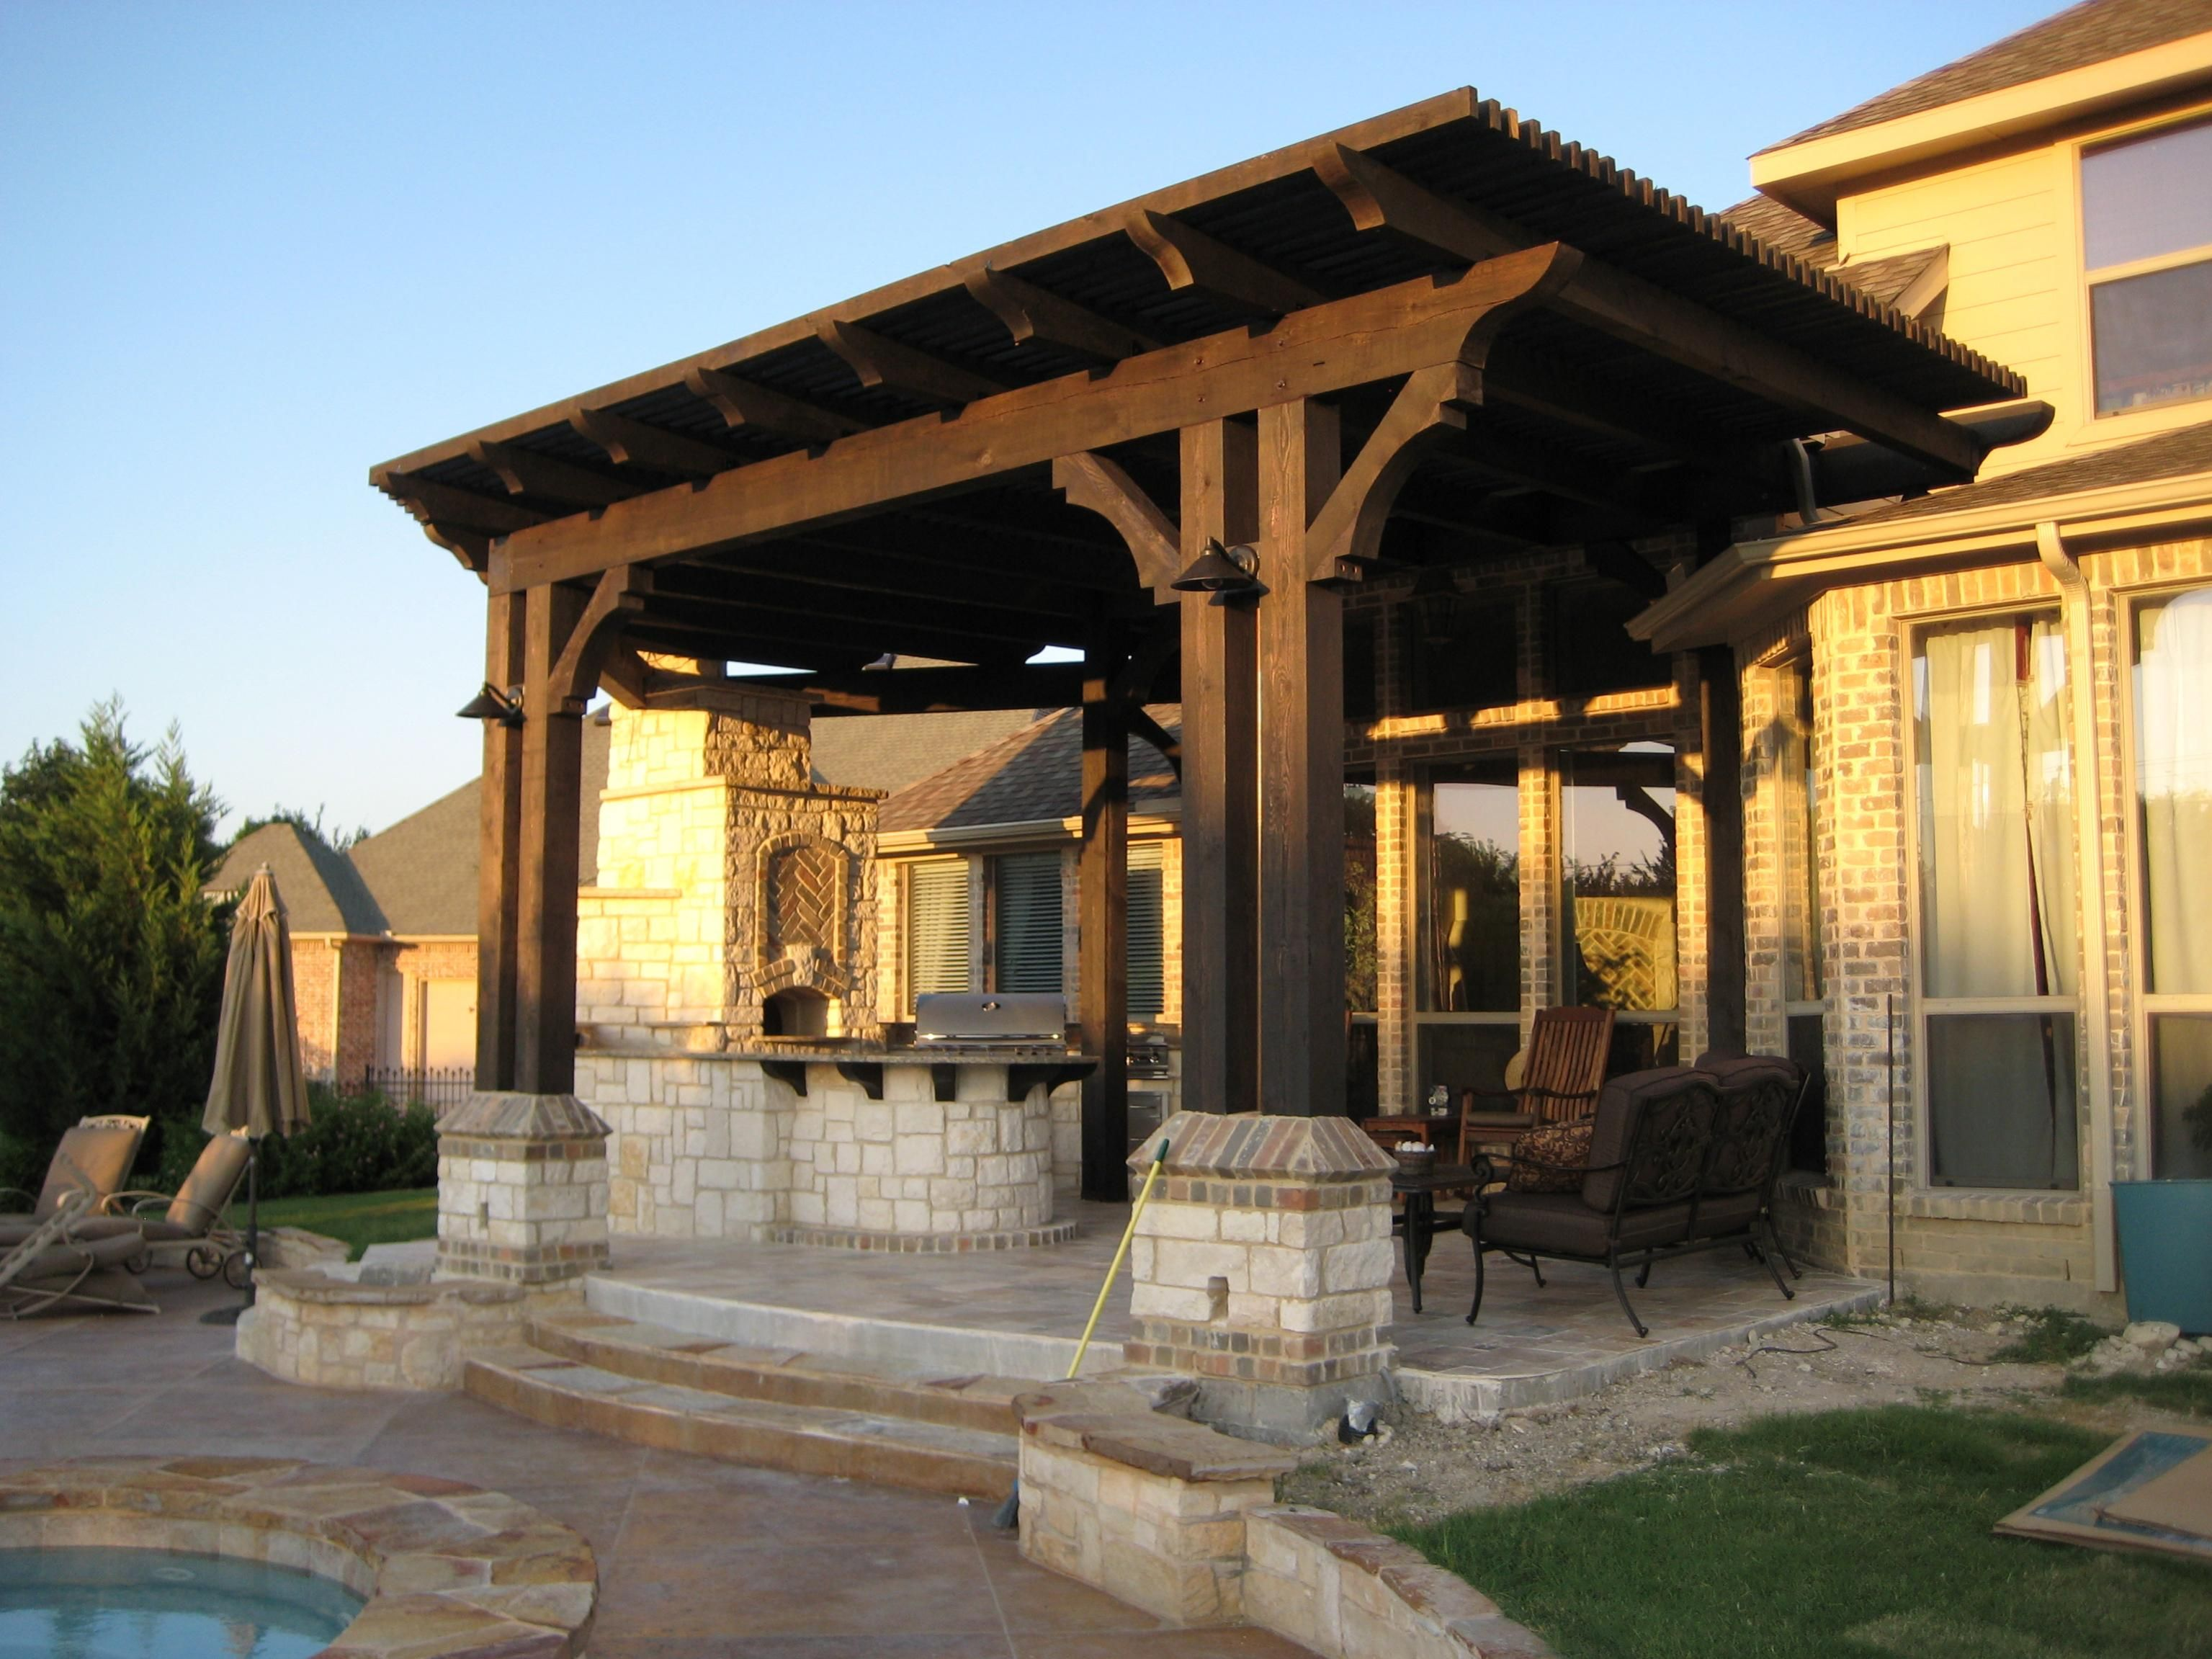 patio attached stylish pergola sturdy cover hip installing diy house size for to of a build designs aluminum how ideas roof yet building fiberglass galleries see backyard full